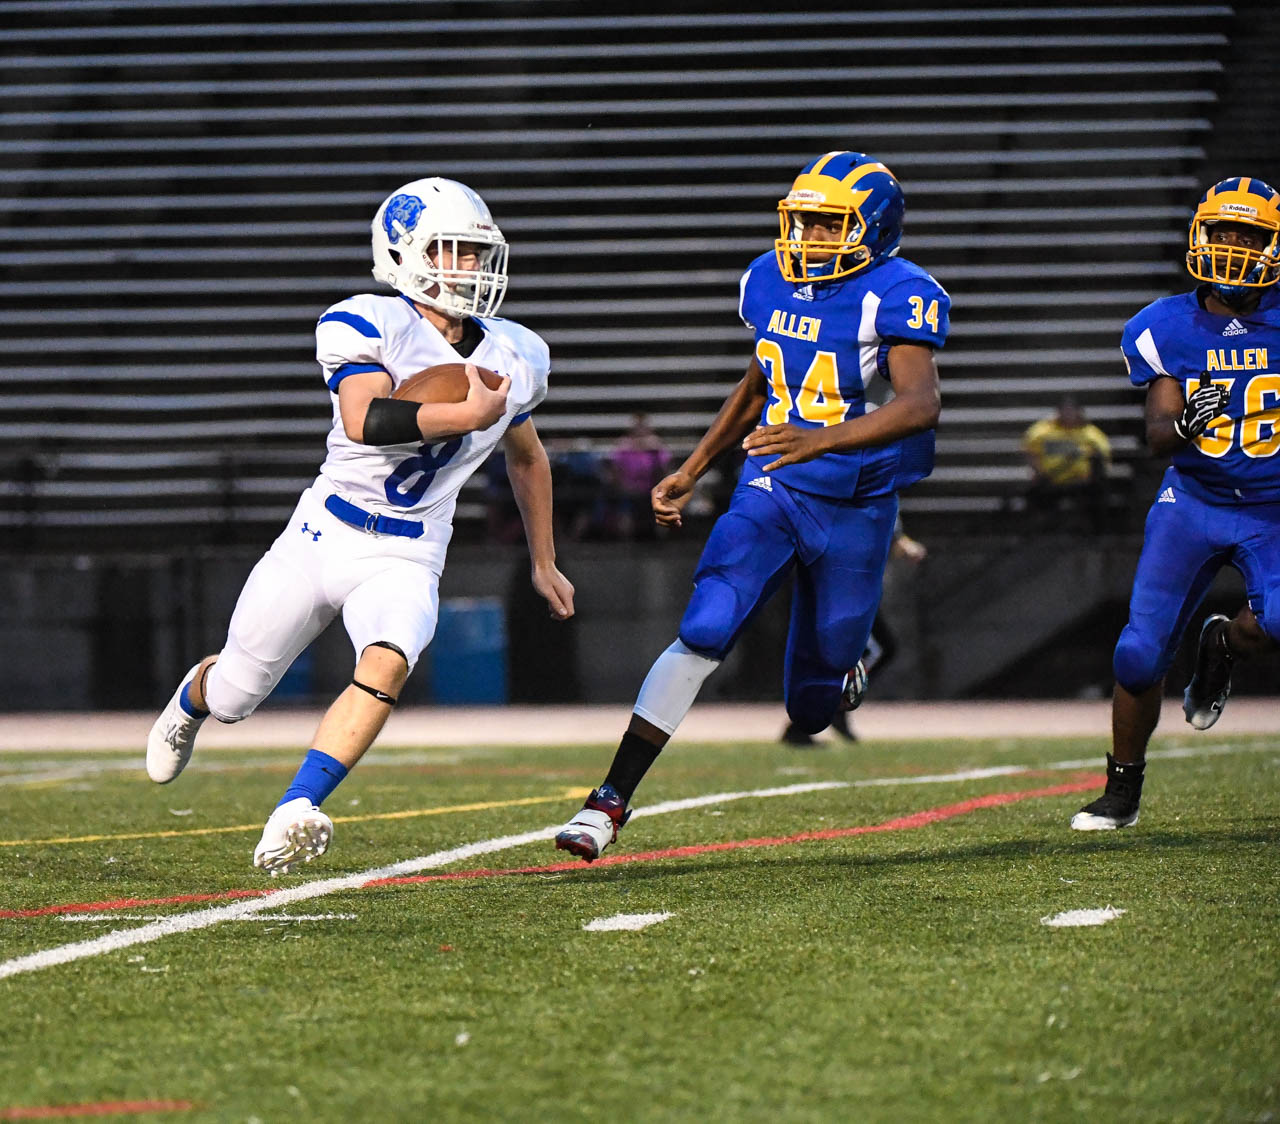 Christopher Tartamella gains yards against Allen in Allentown on Friday, August 31, 2018.